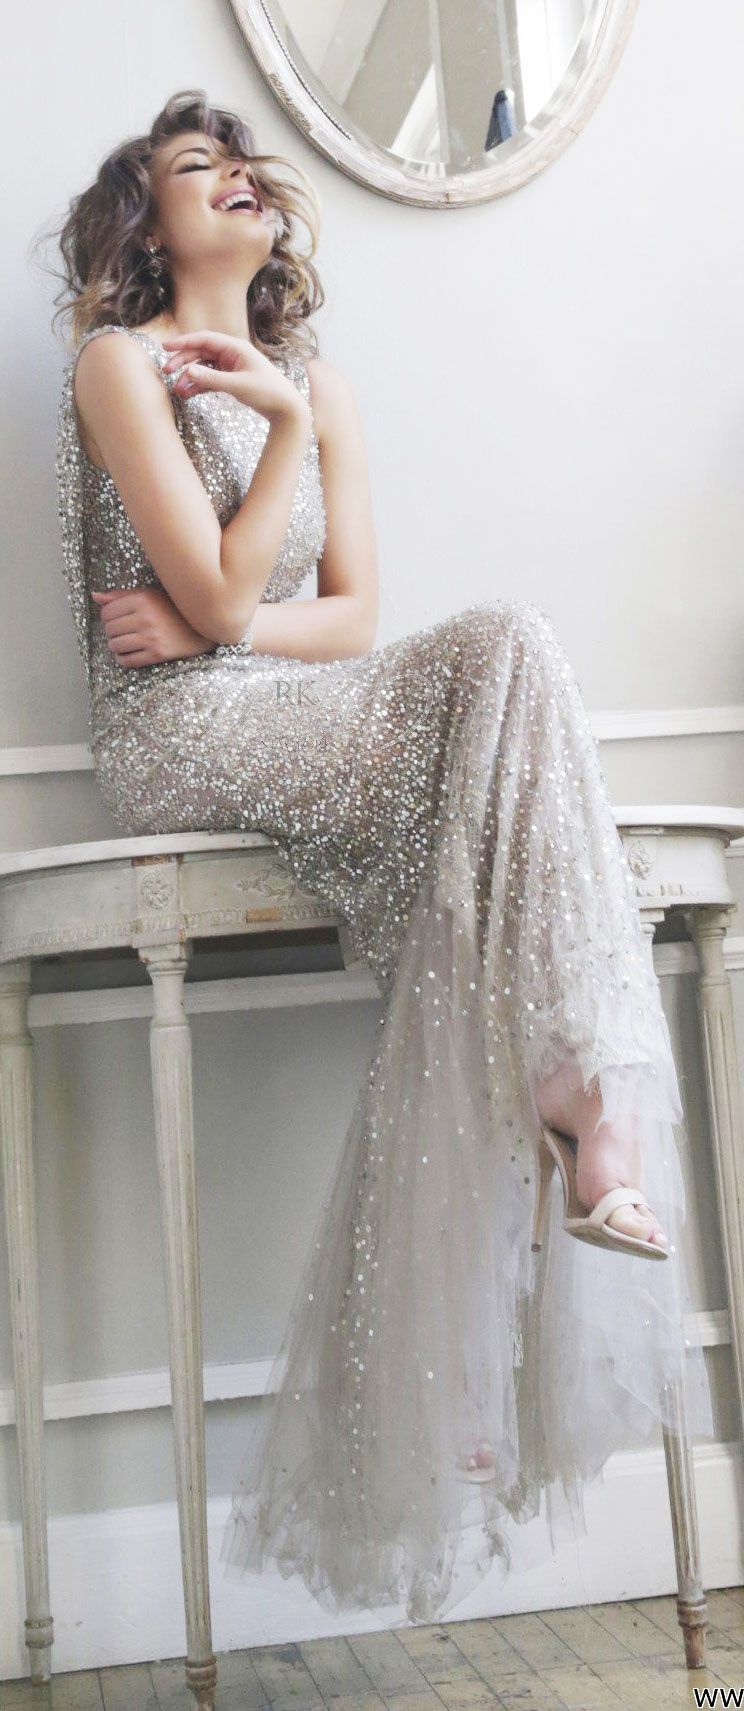 Sparkle: If I were to ever wear a sparkly gown, it would be this one